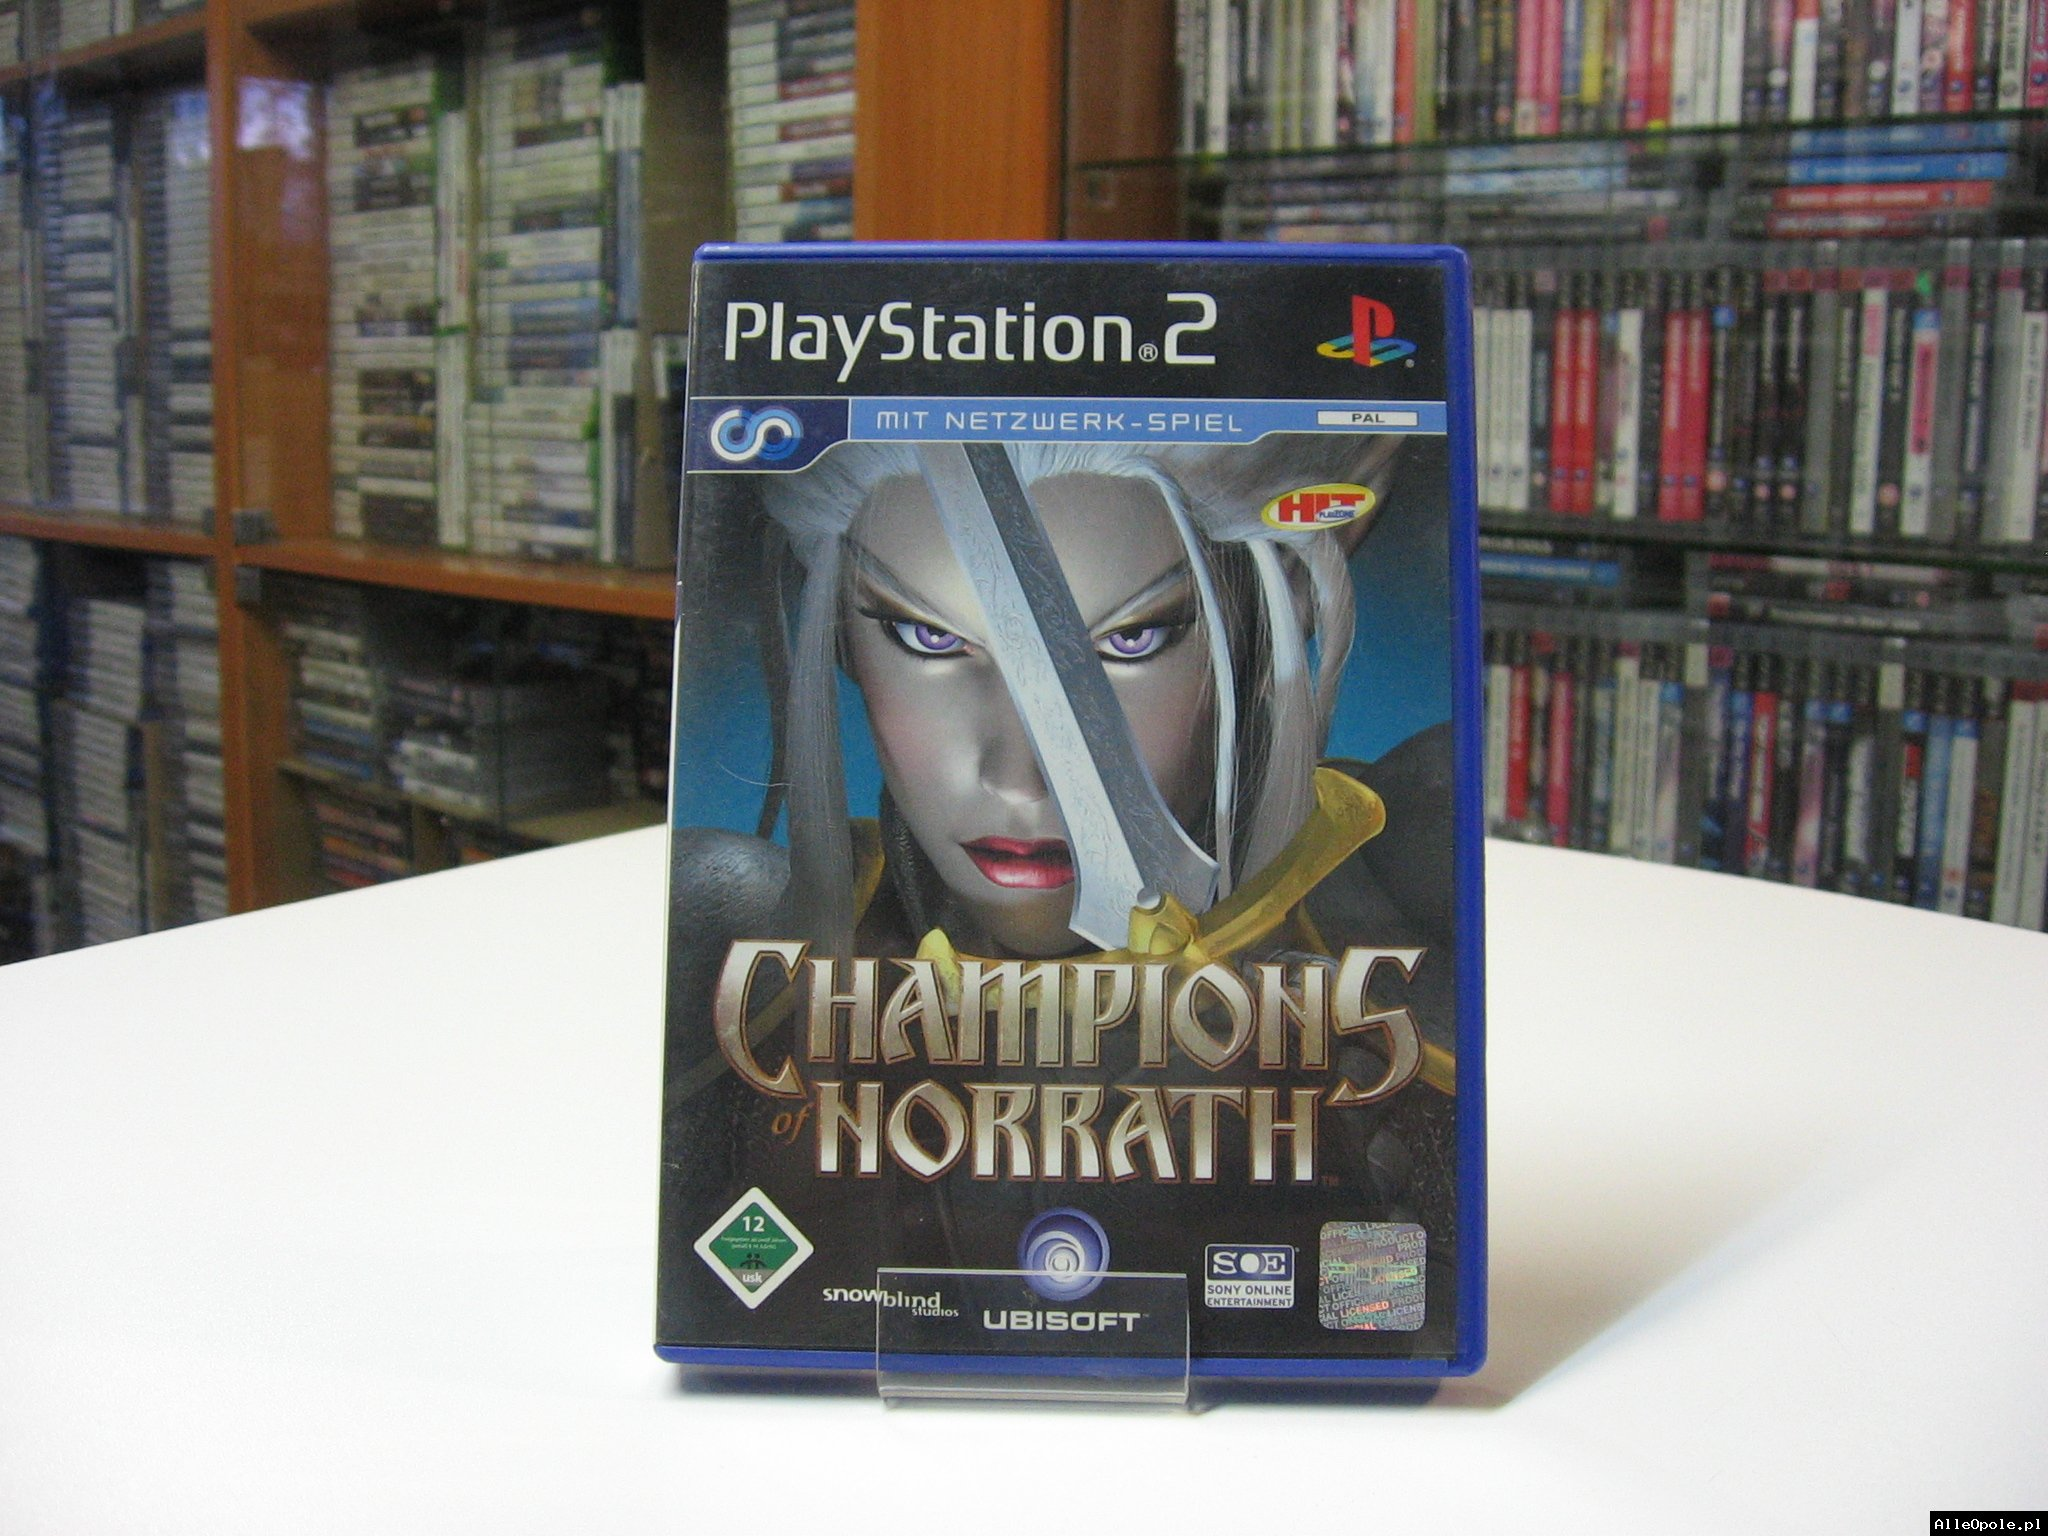 Champions of Norrath - GRA Ps2 - Opole 0569